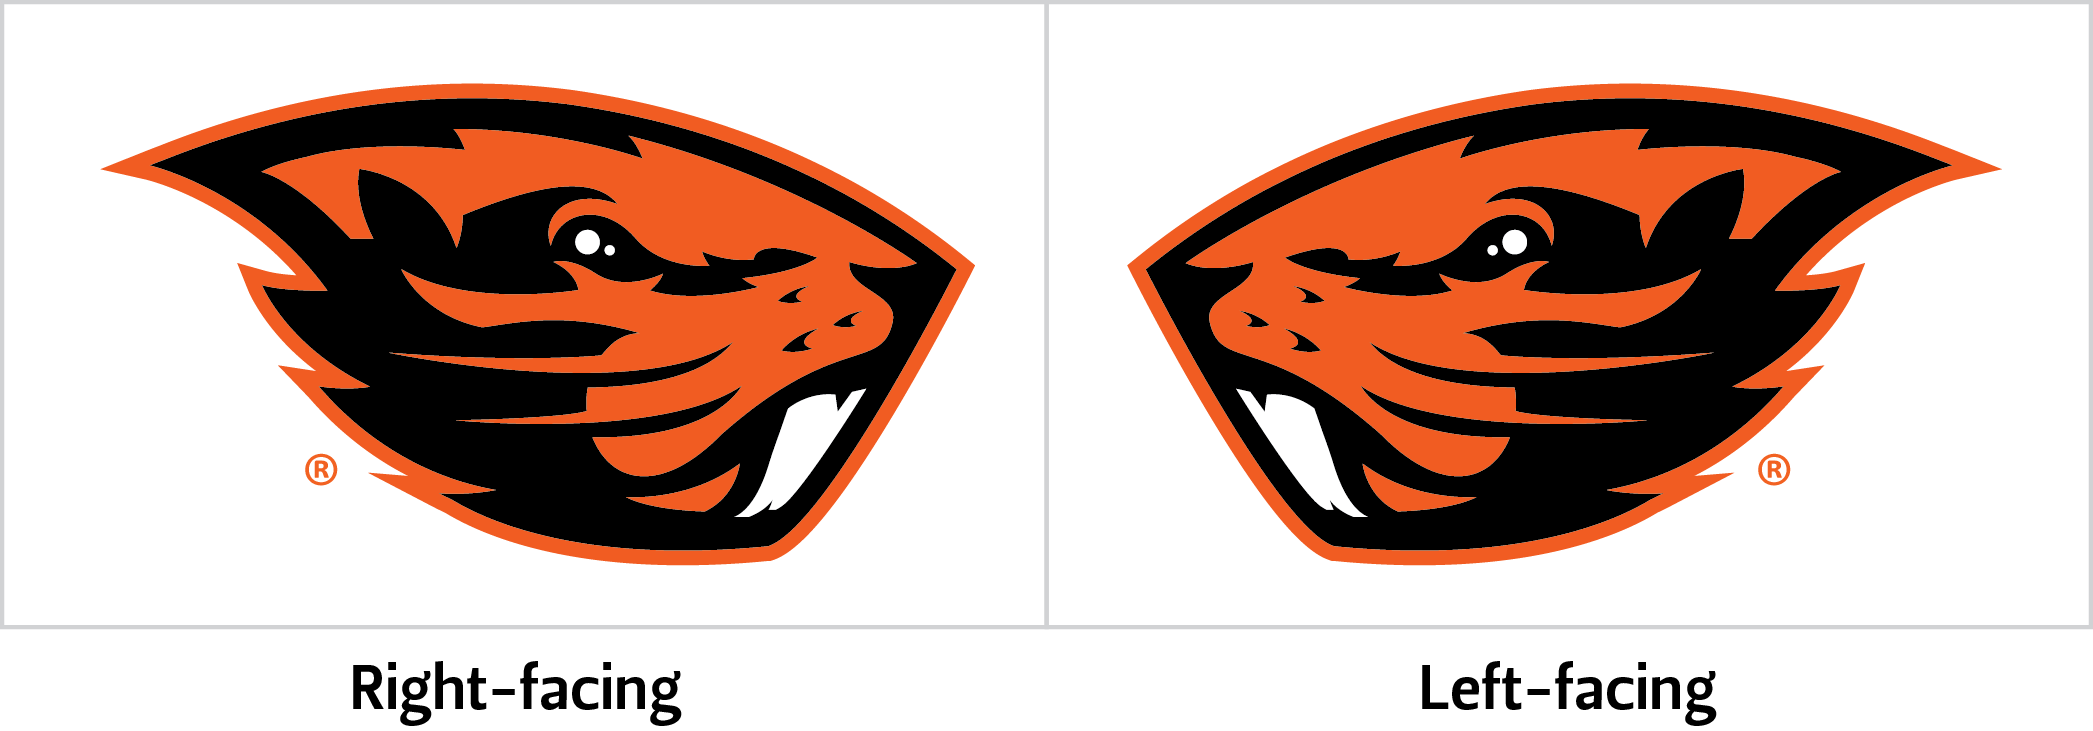 Oregon state beaver logo clipart images gallery for free.